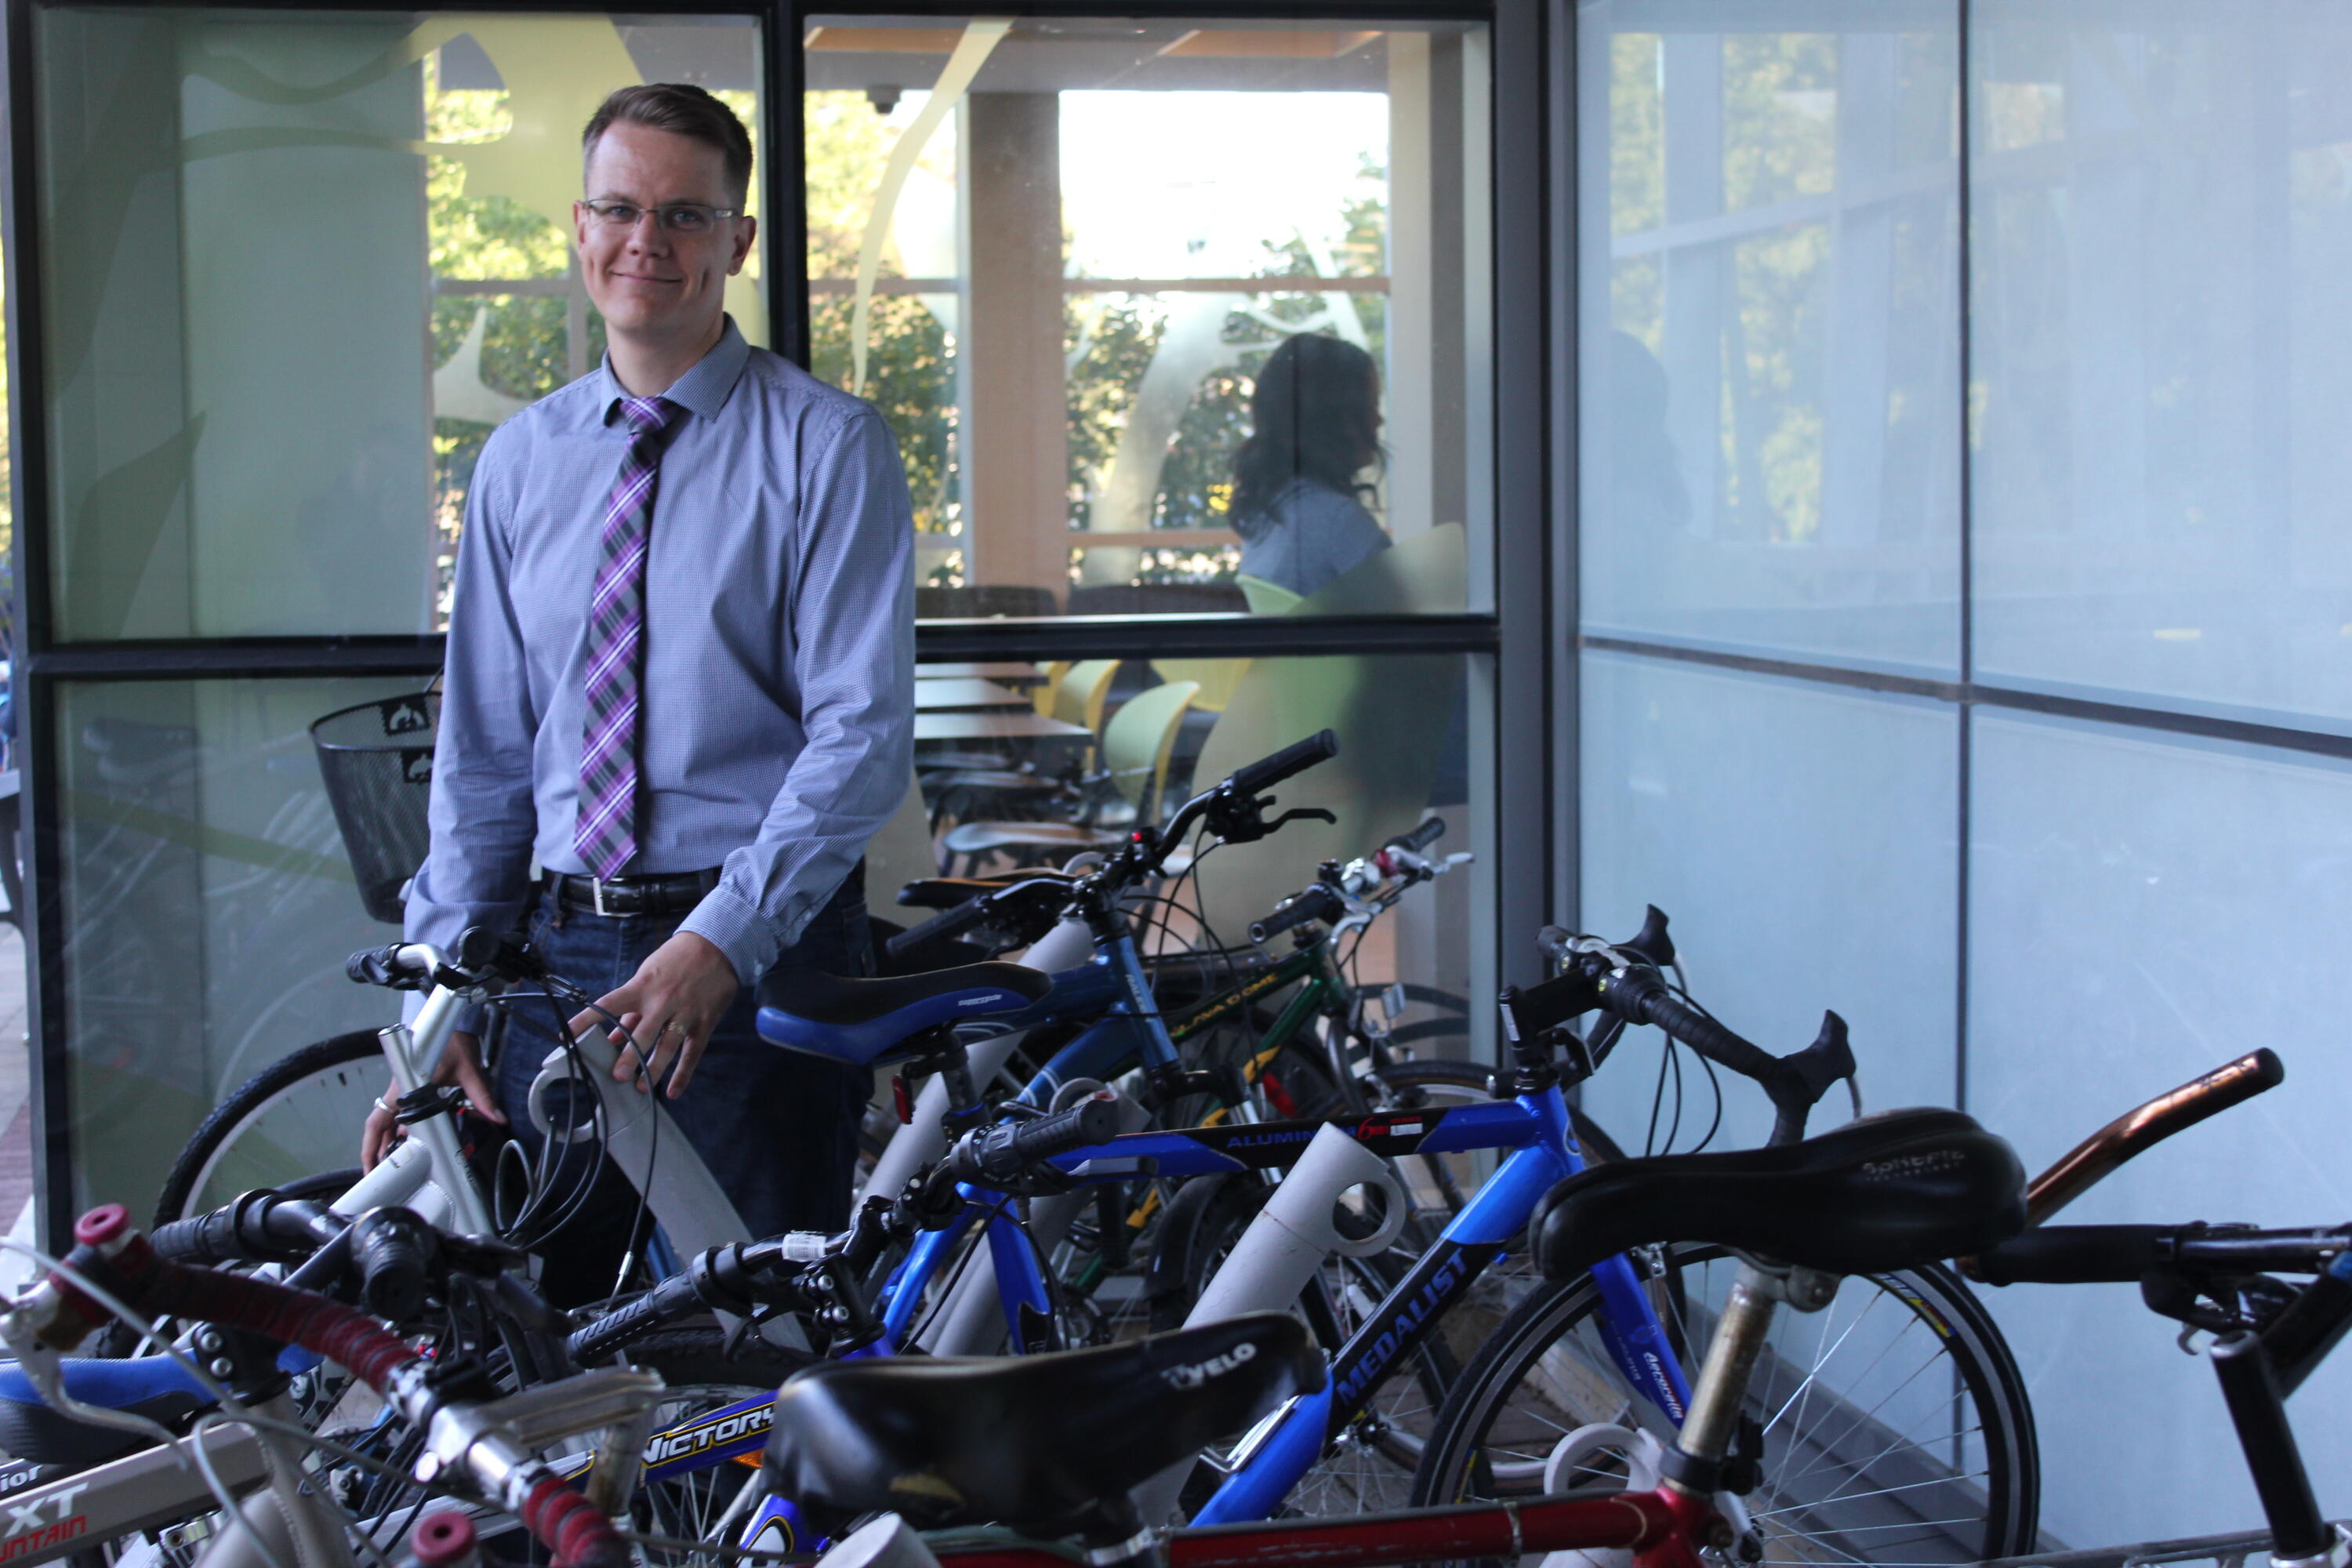 Markus standing with bikes